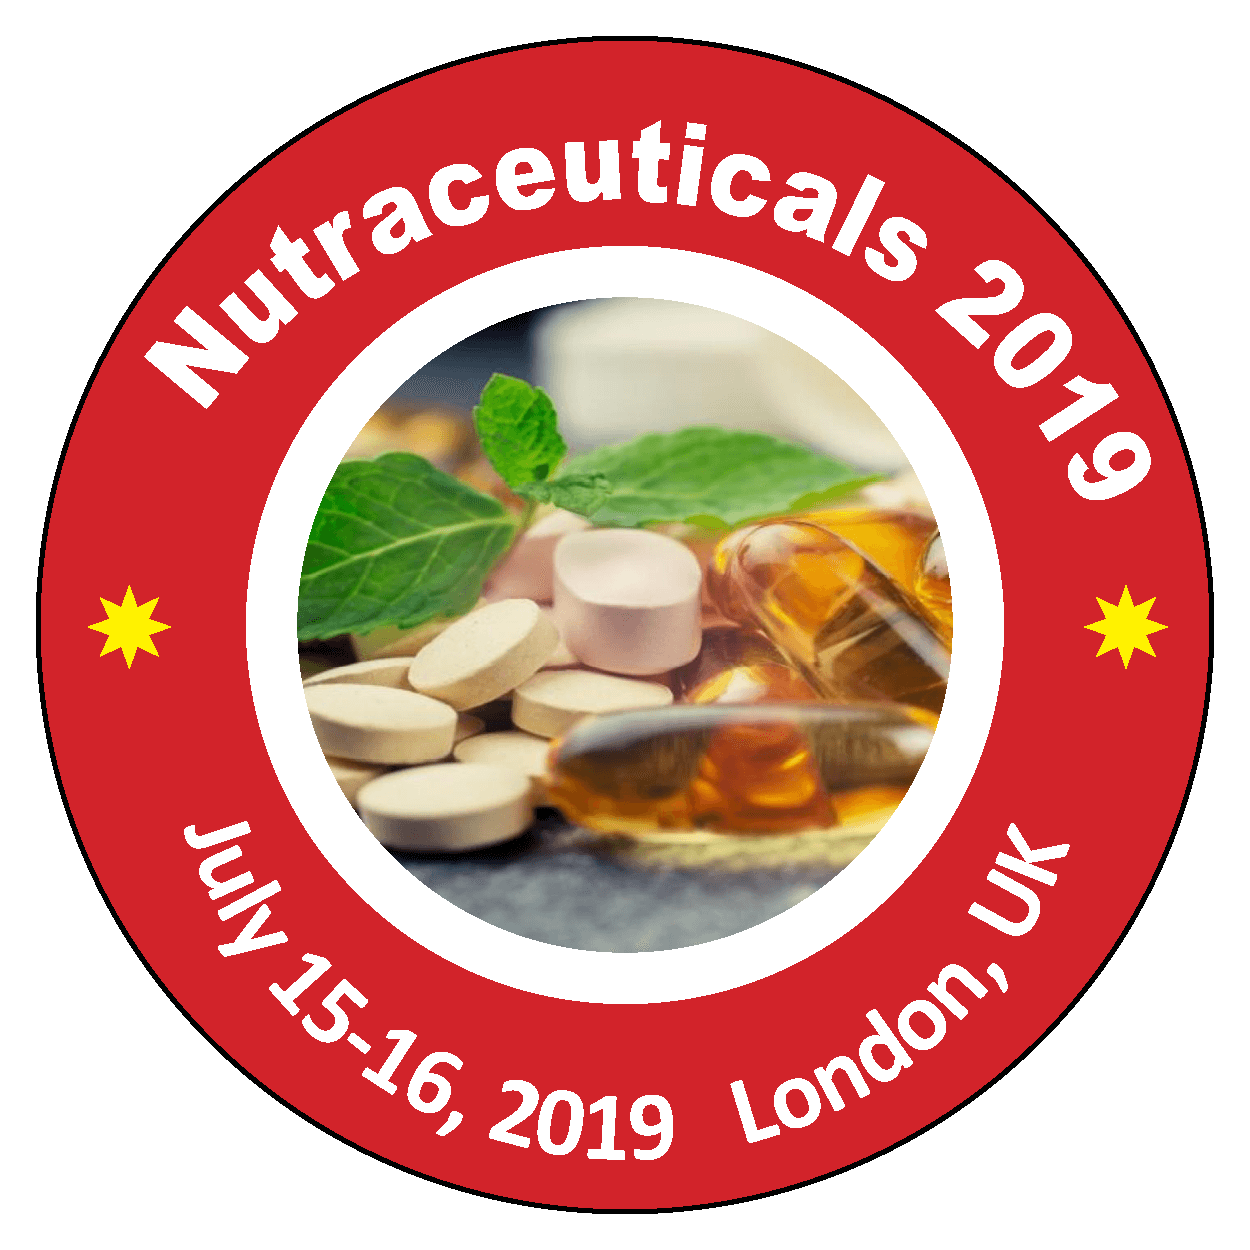 https://nutraceuticals.pulsusconference.com/